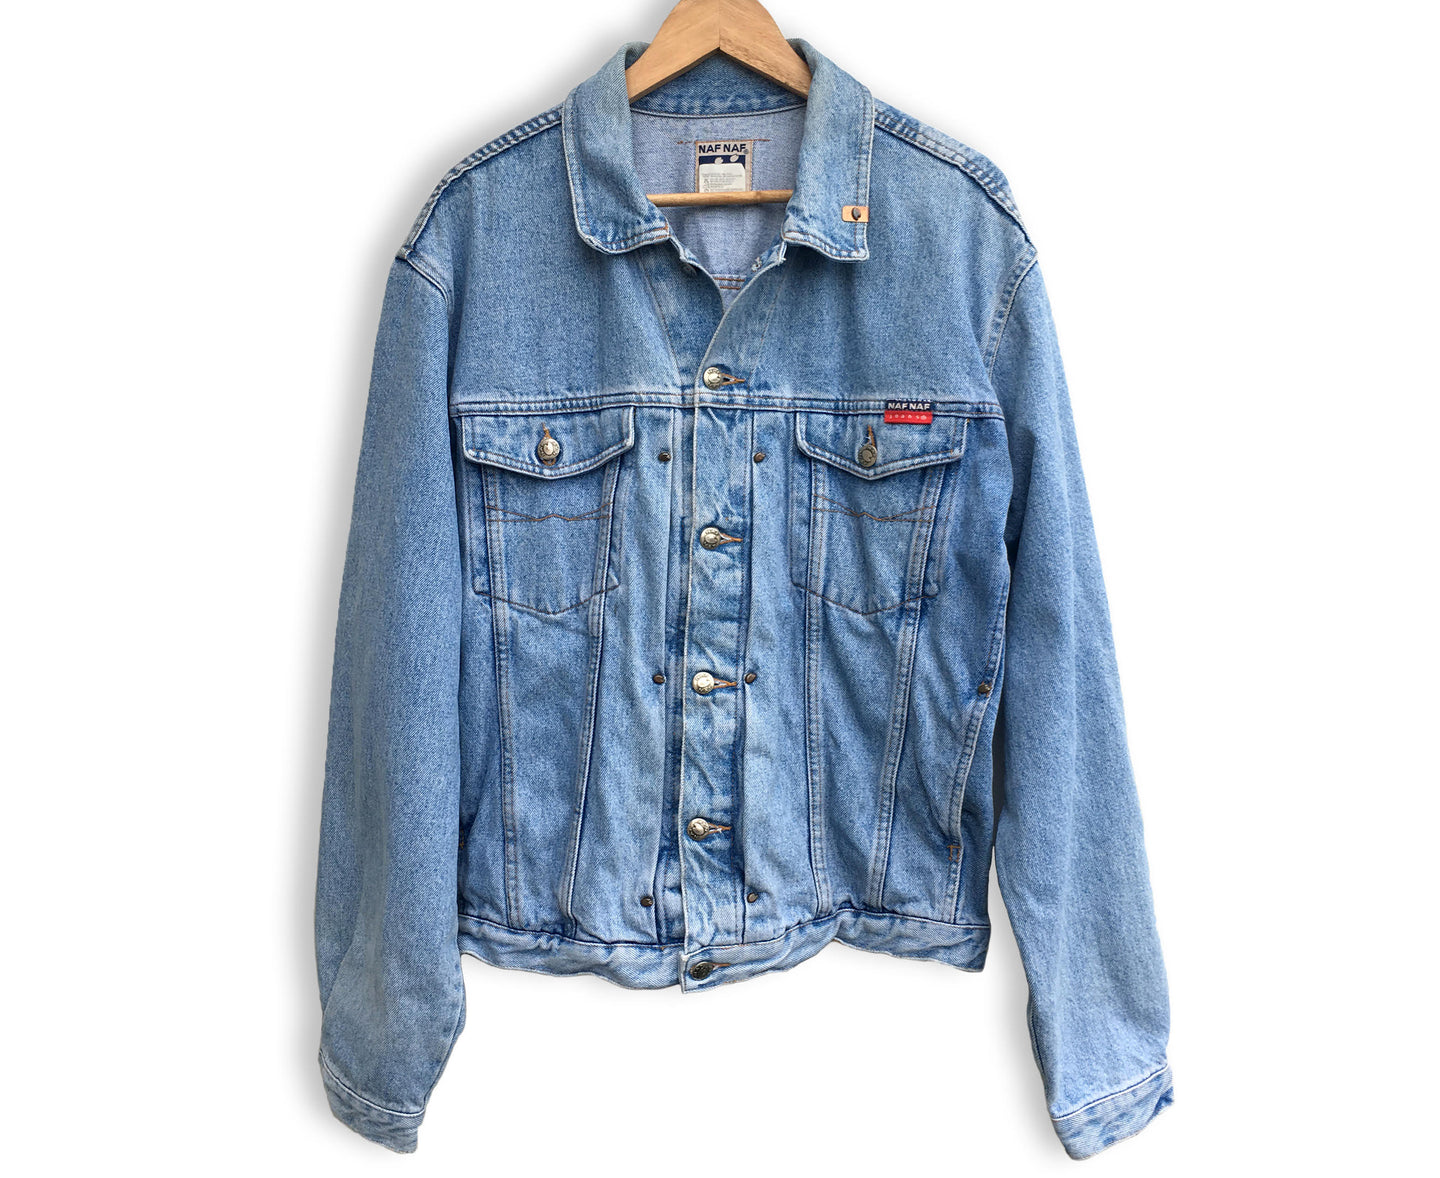 Vintage Naf Naf Denim Jacket